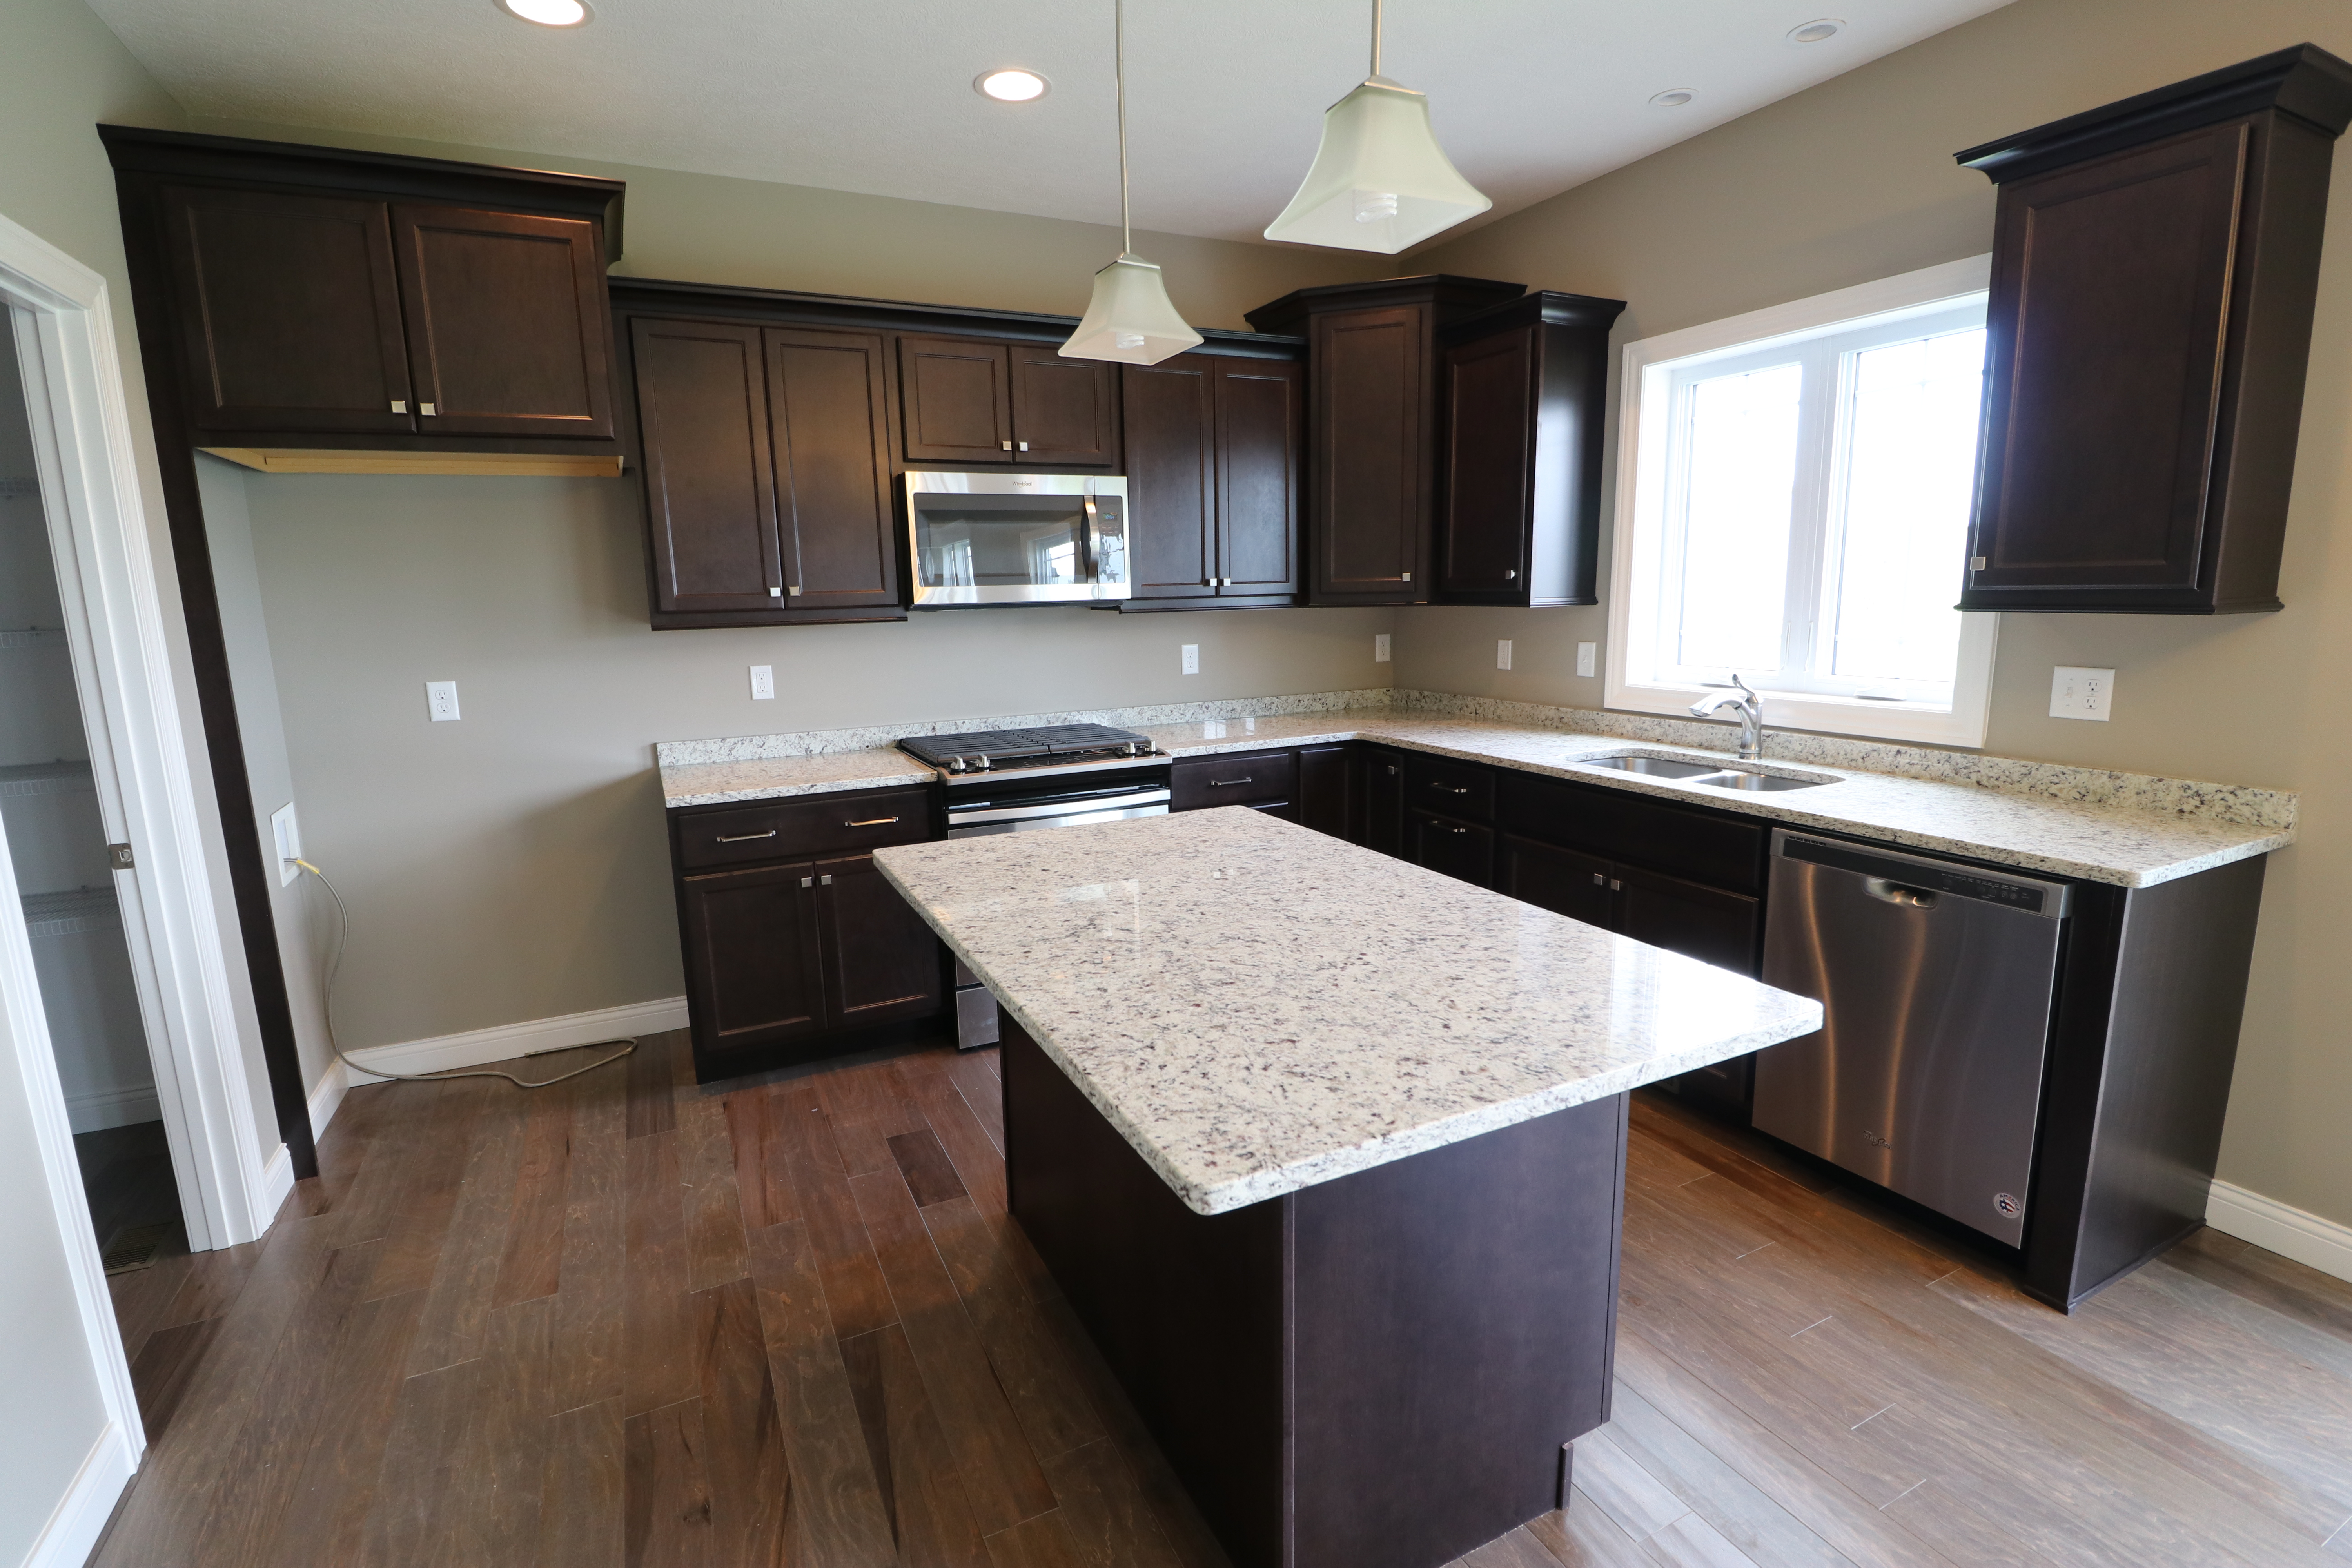 House for sale in the Dunlap peoria area kitchen up close